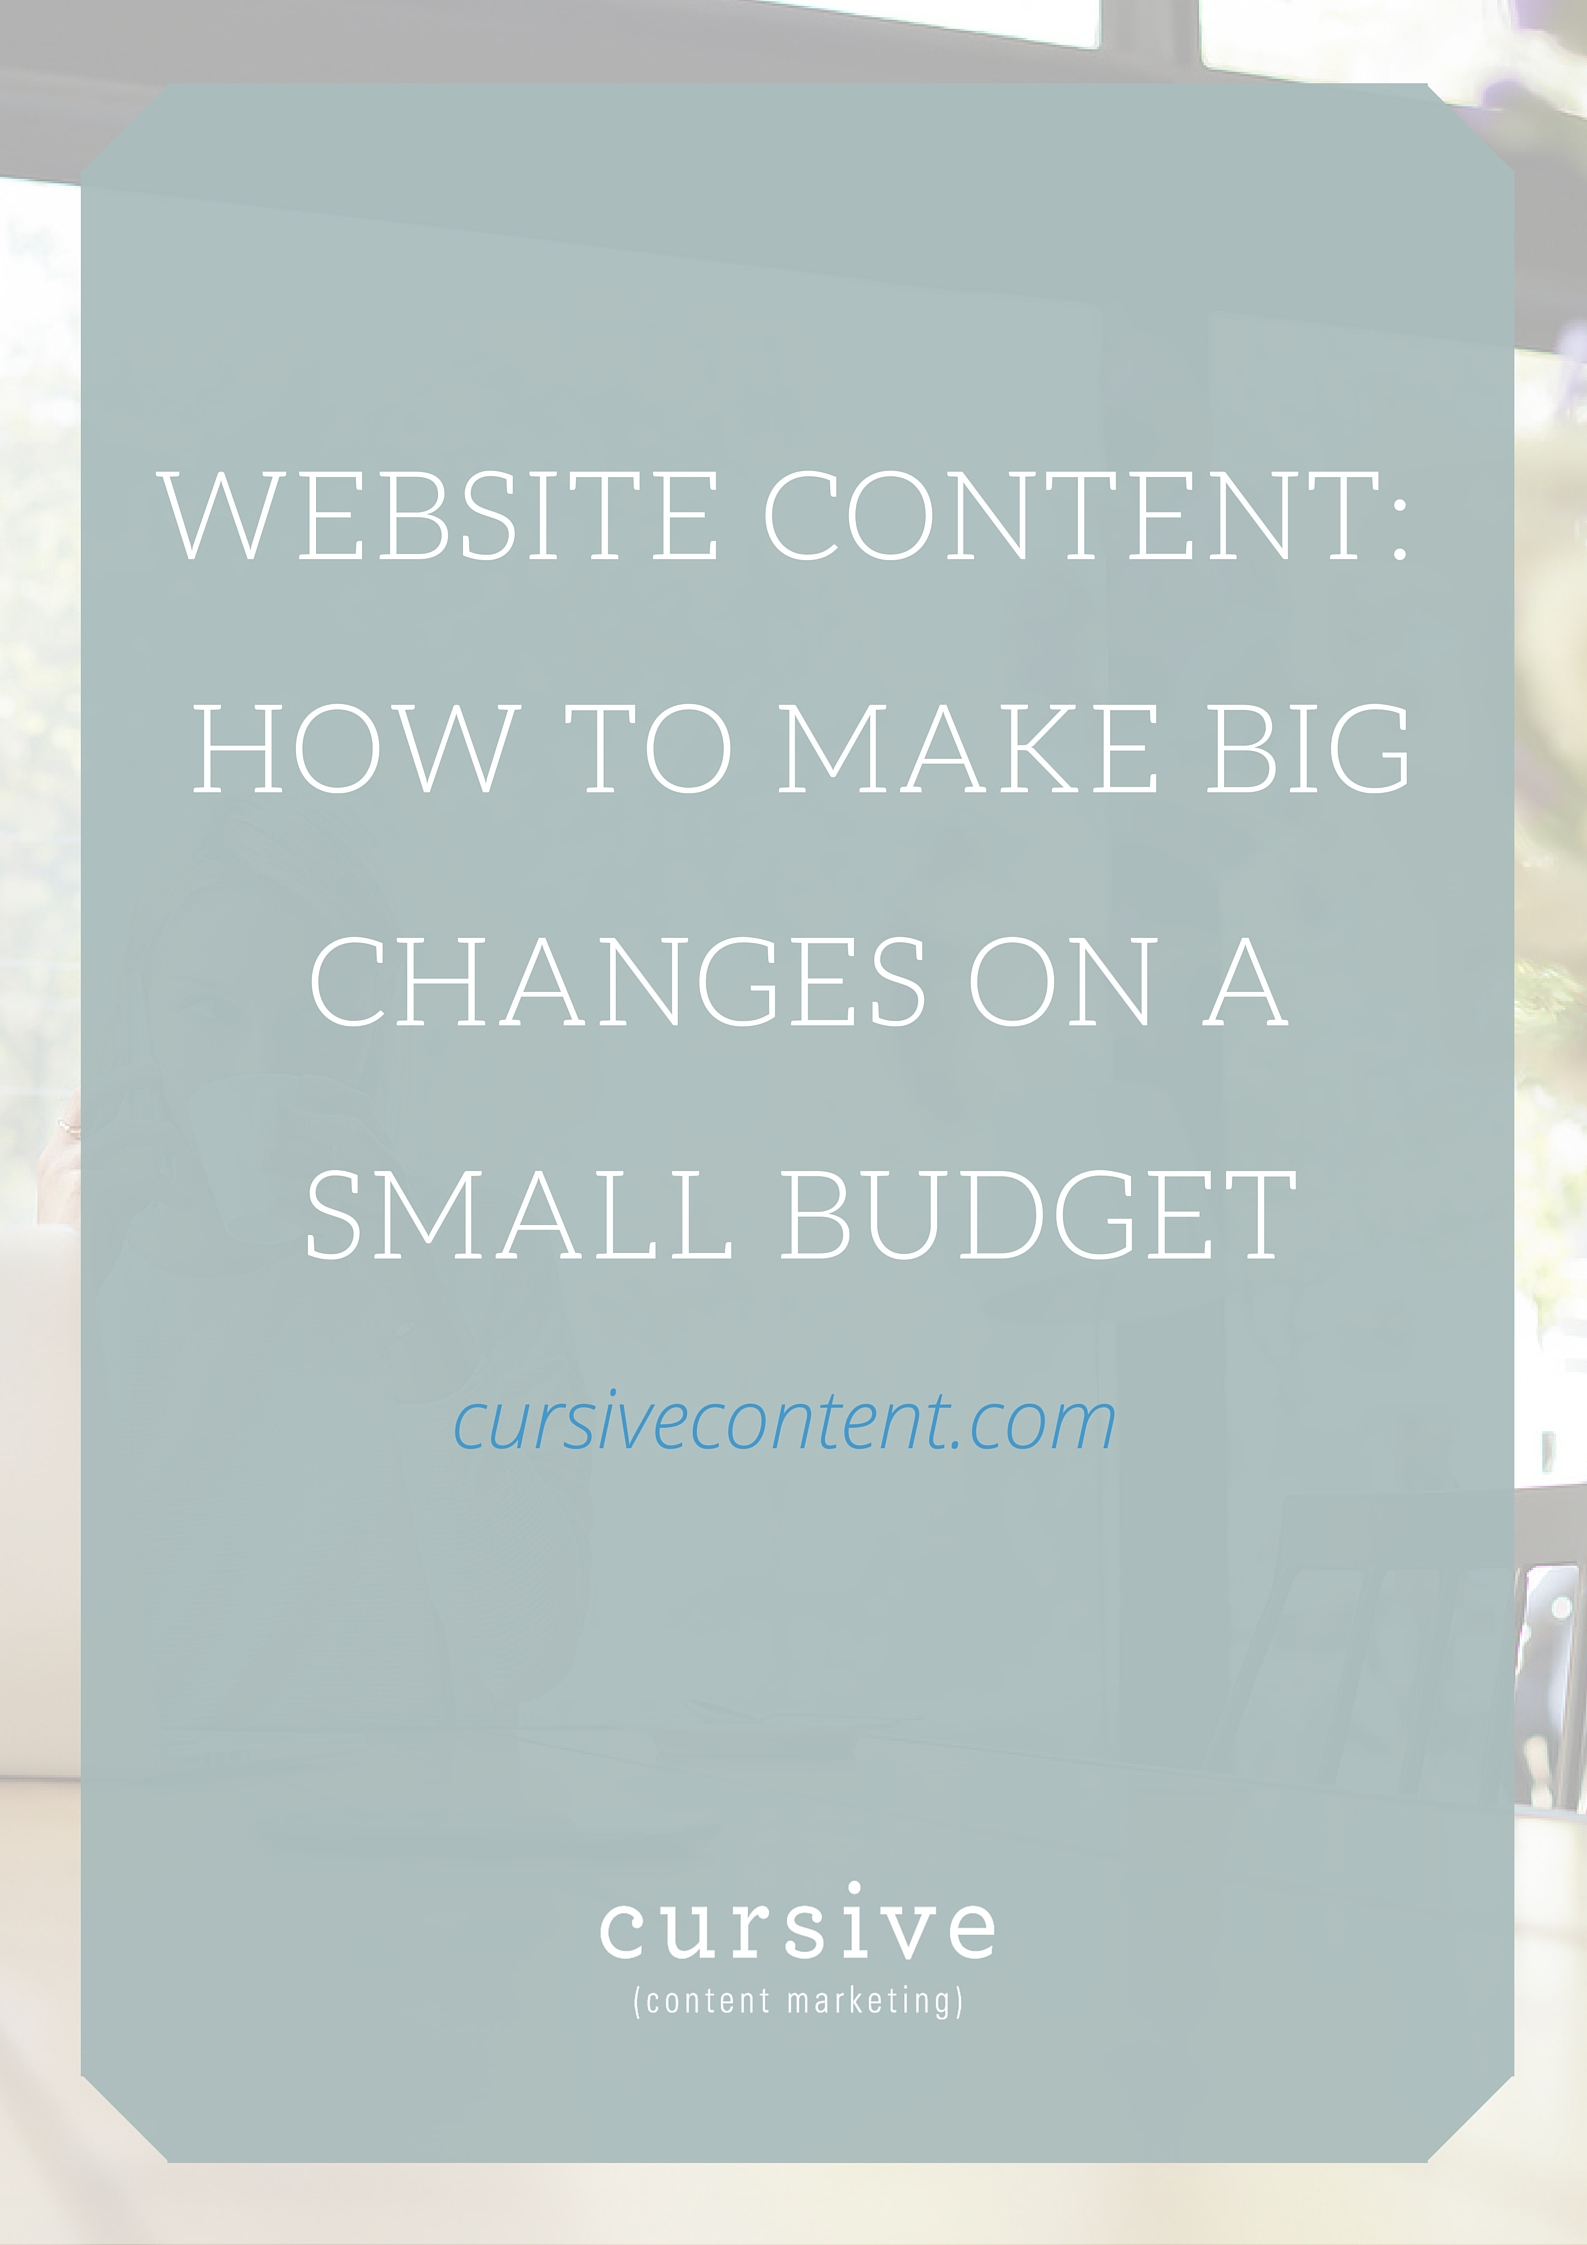 How to create website content